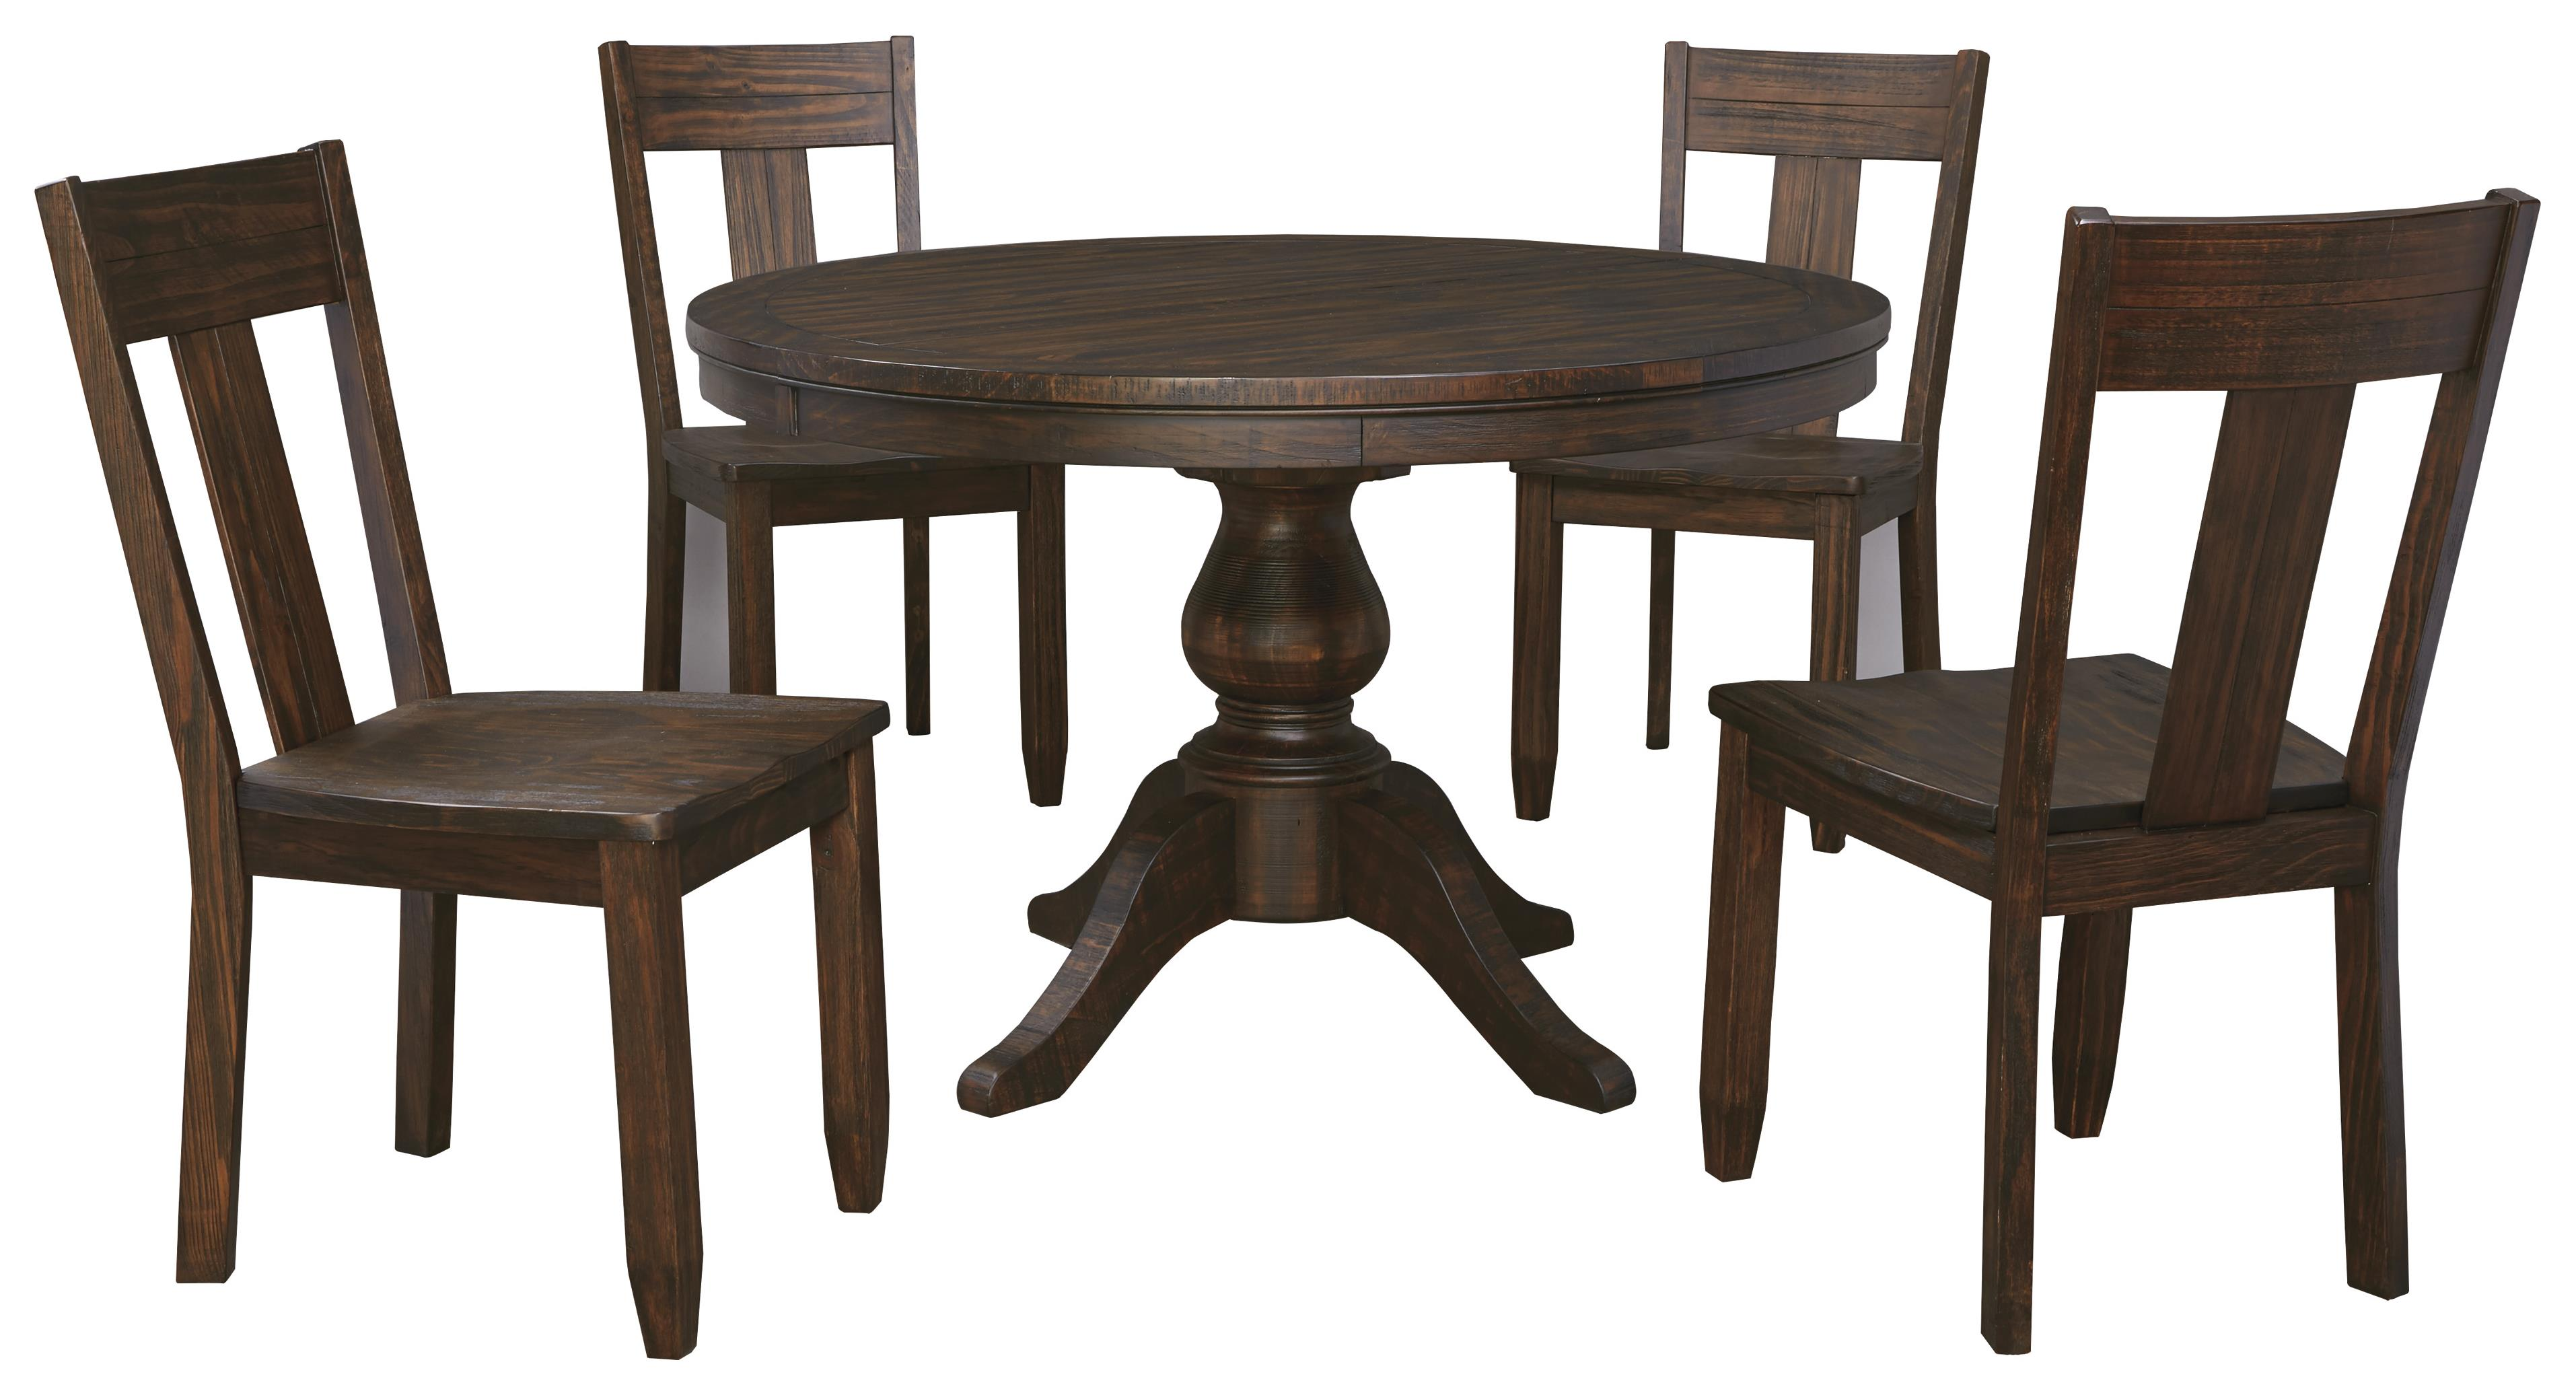 5 piece round dining table set with wood seat side chairs for Round dining table set